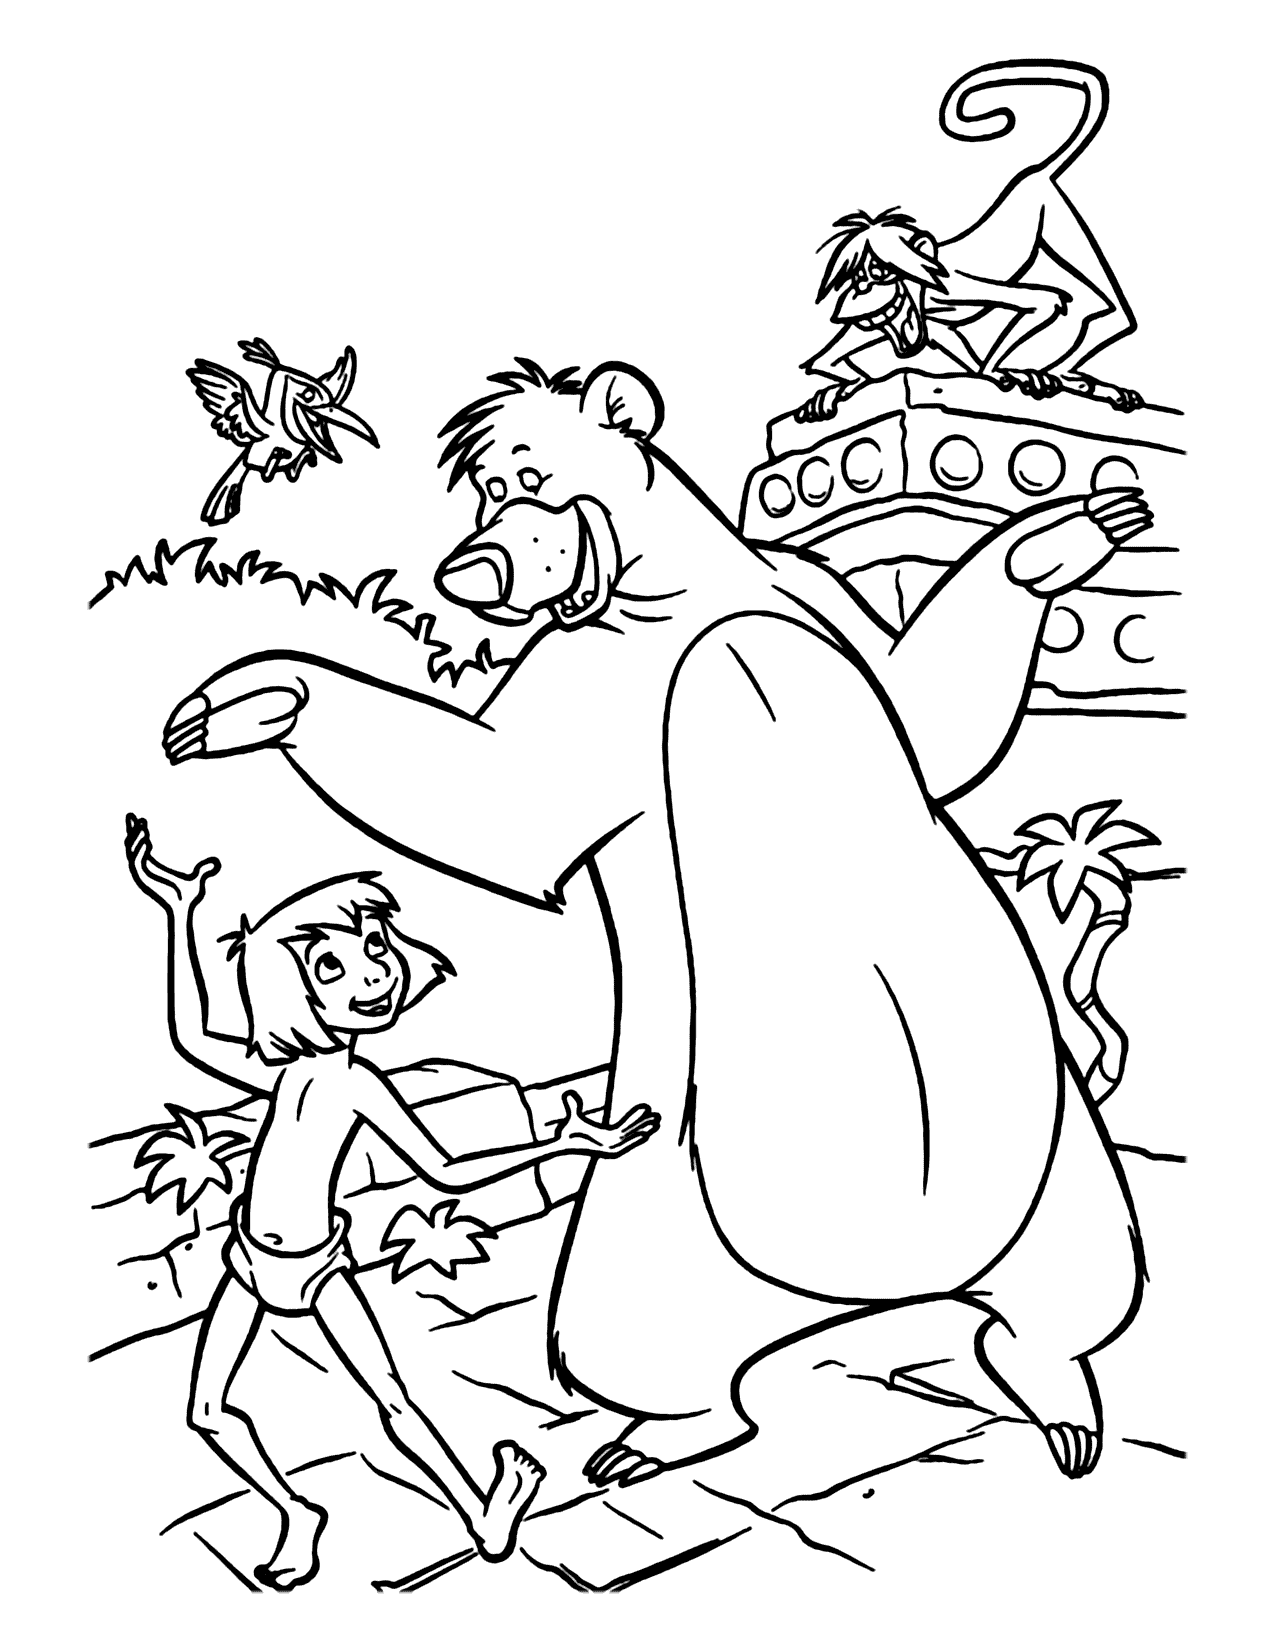 Mowgli And Baloo Jungle Book Coloring Pages